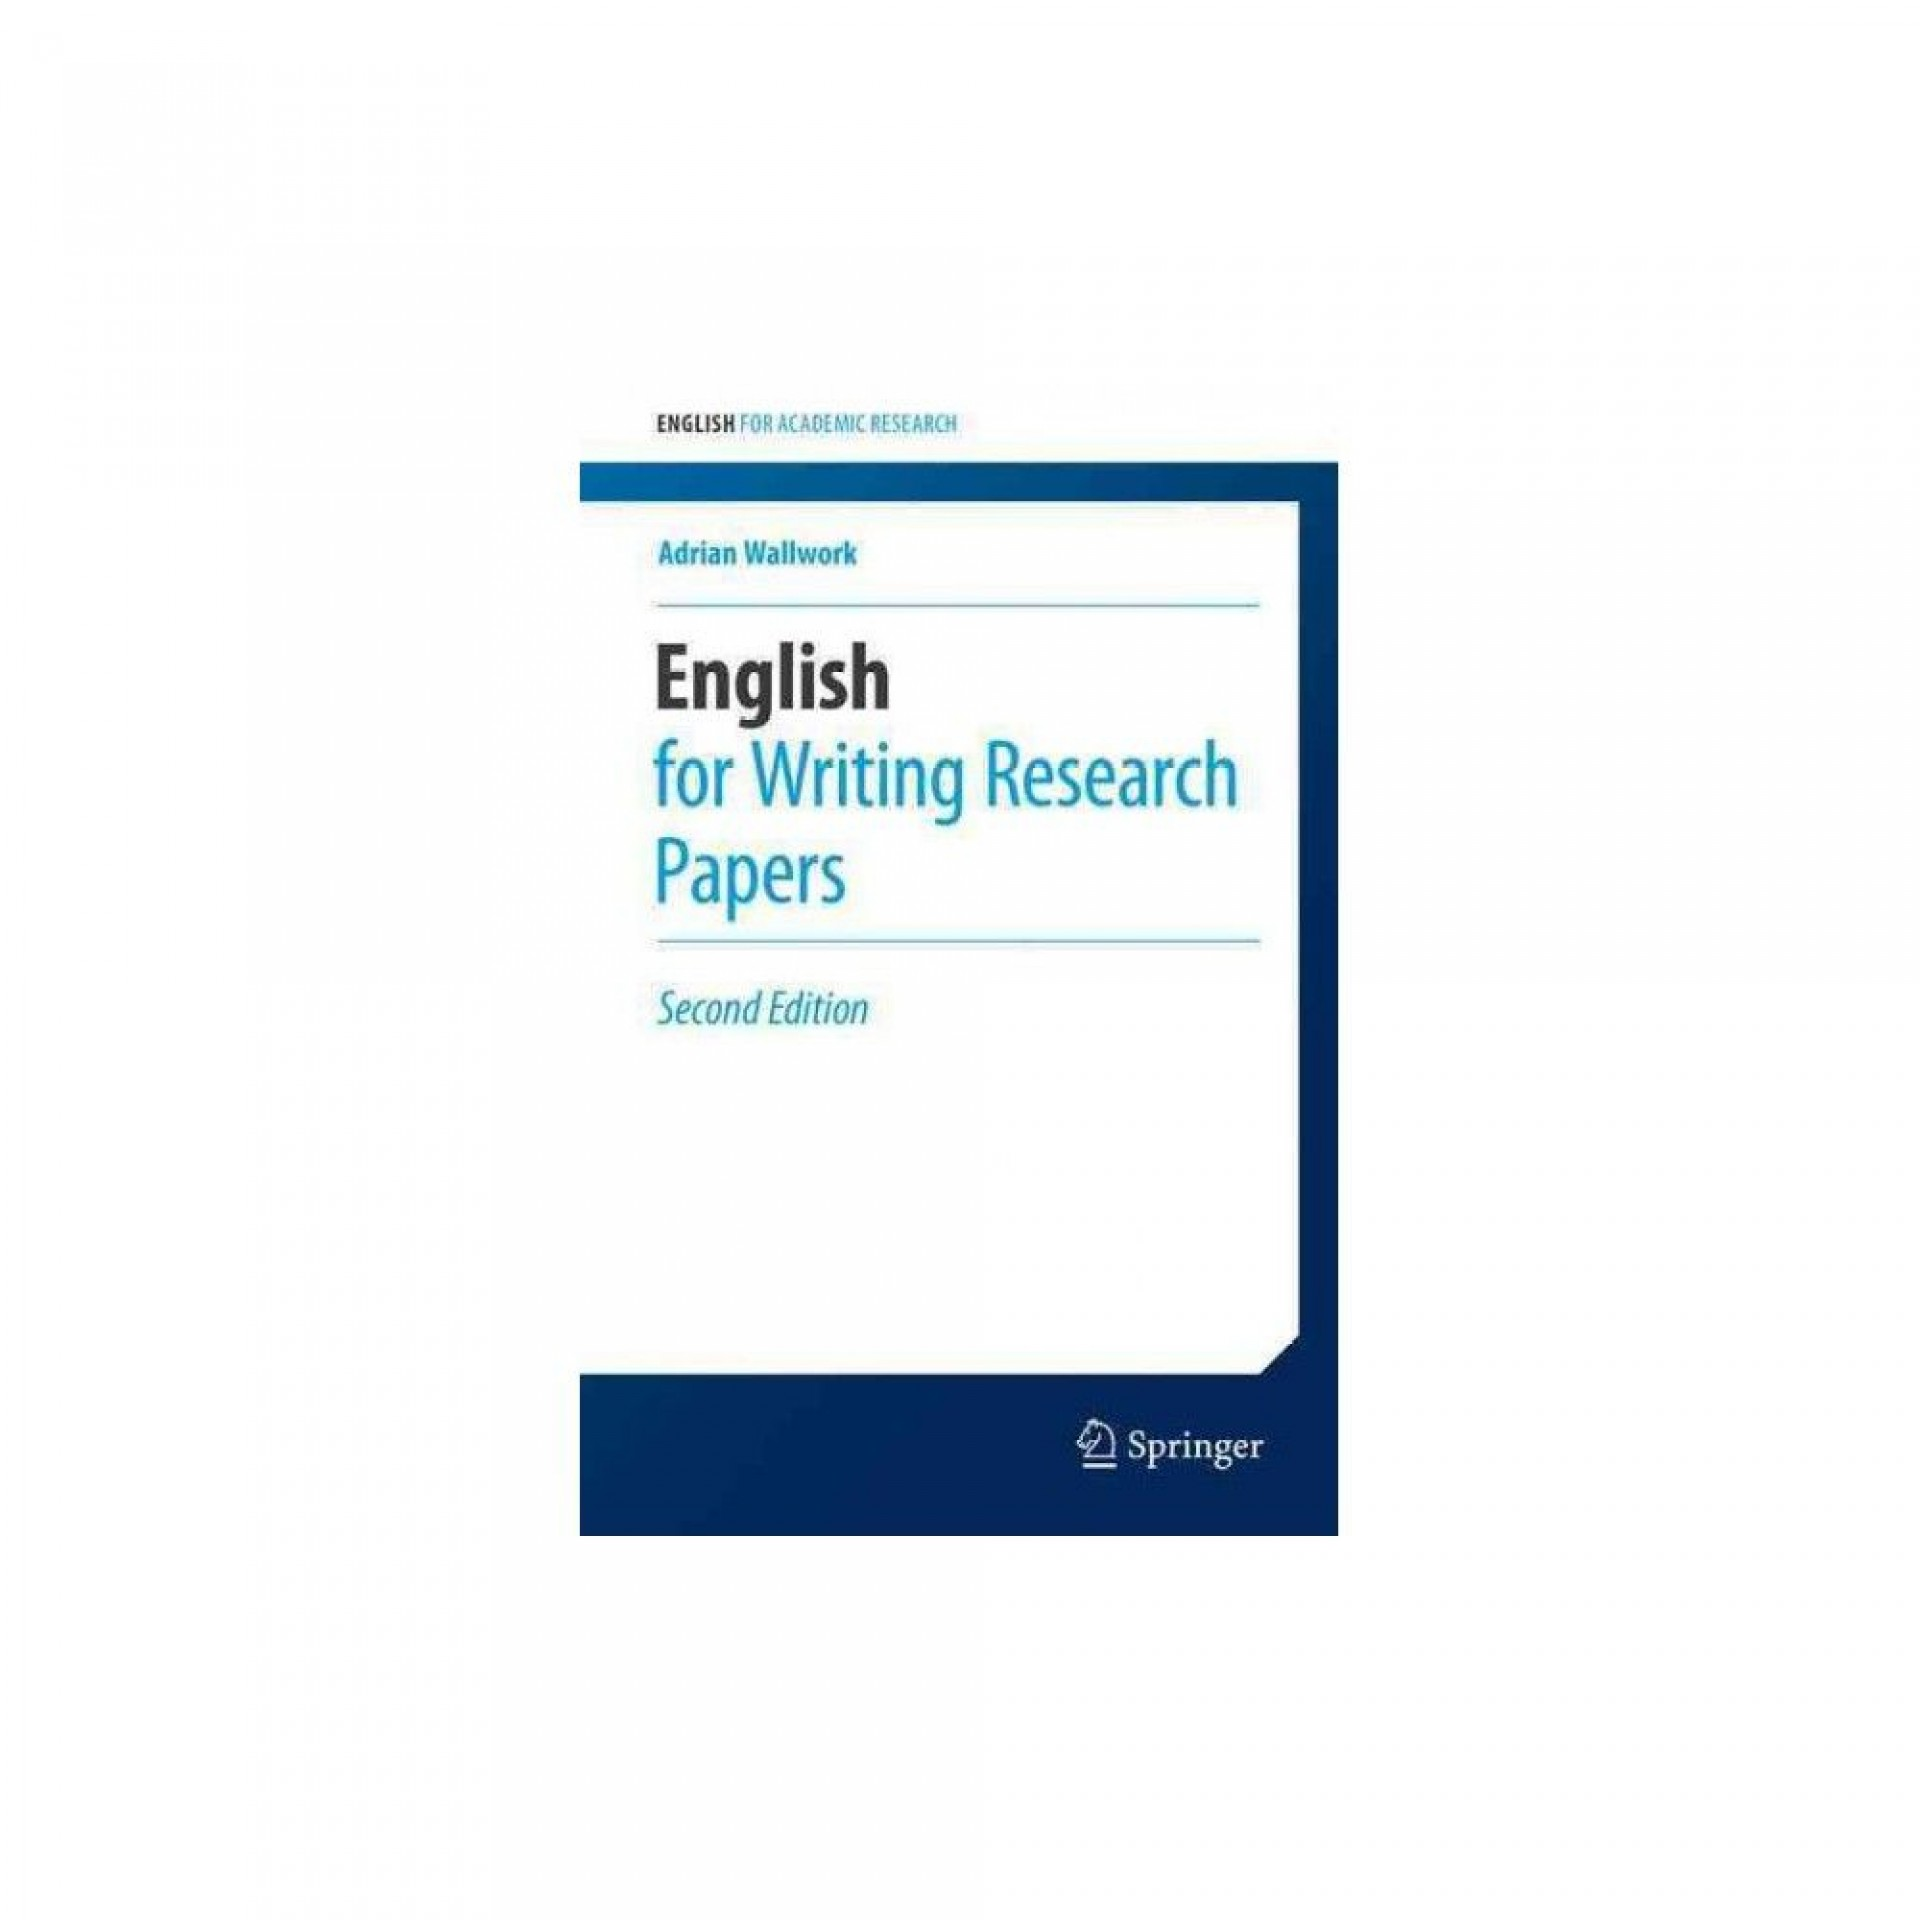 007 Research Paper English For Writing Papers Awesome Springer Pdf Useful Phrases - 1920